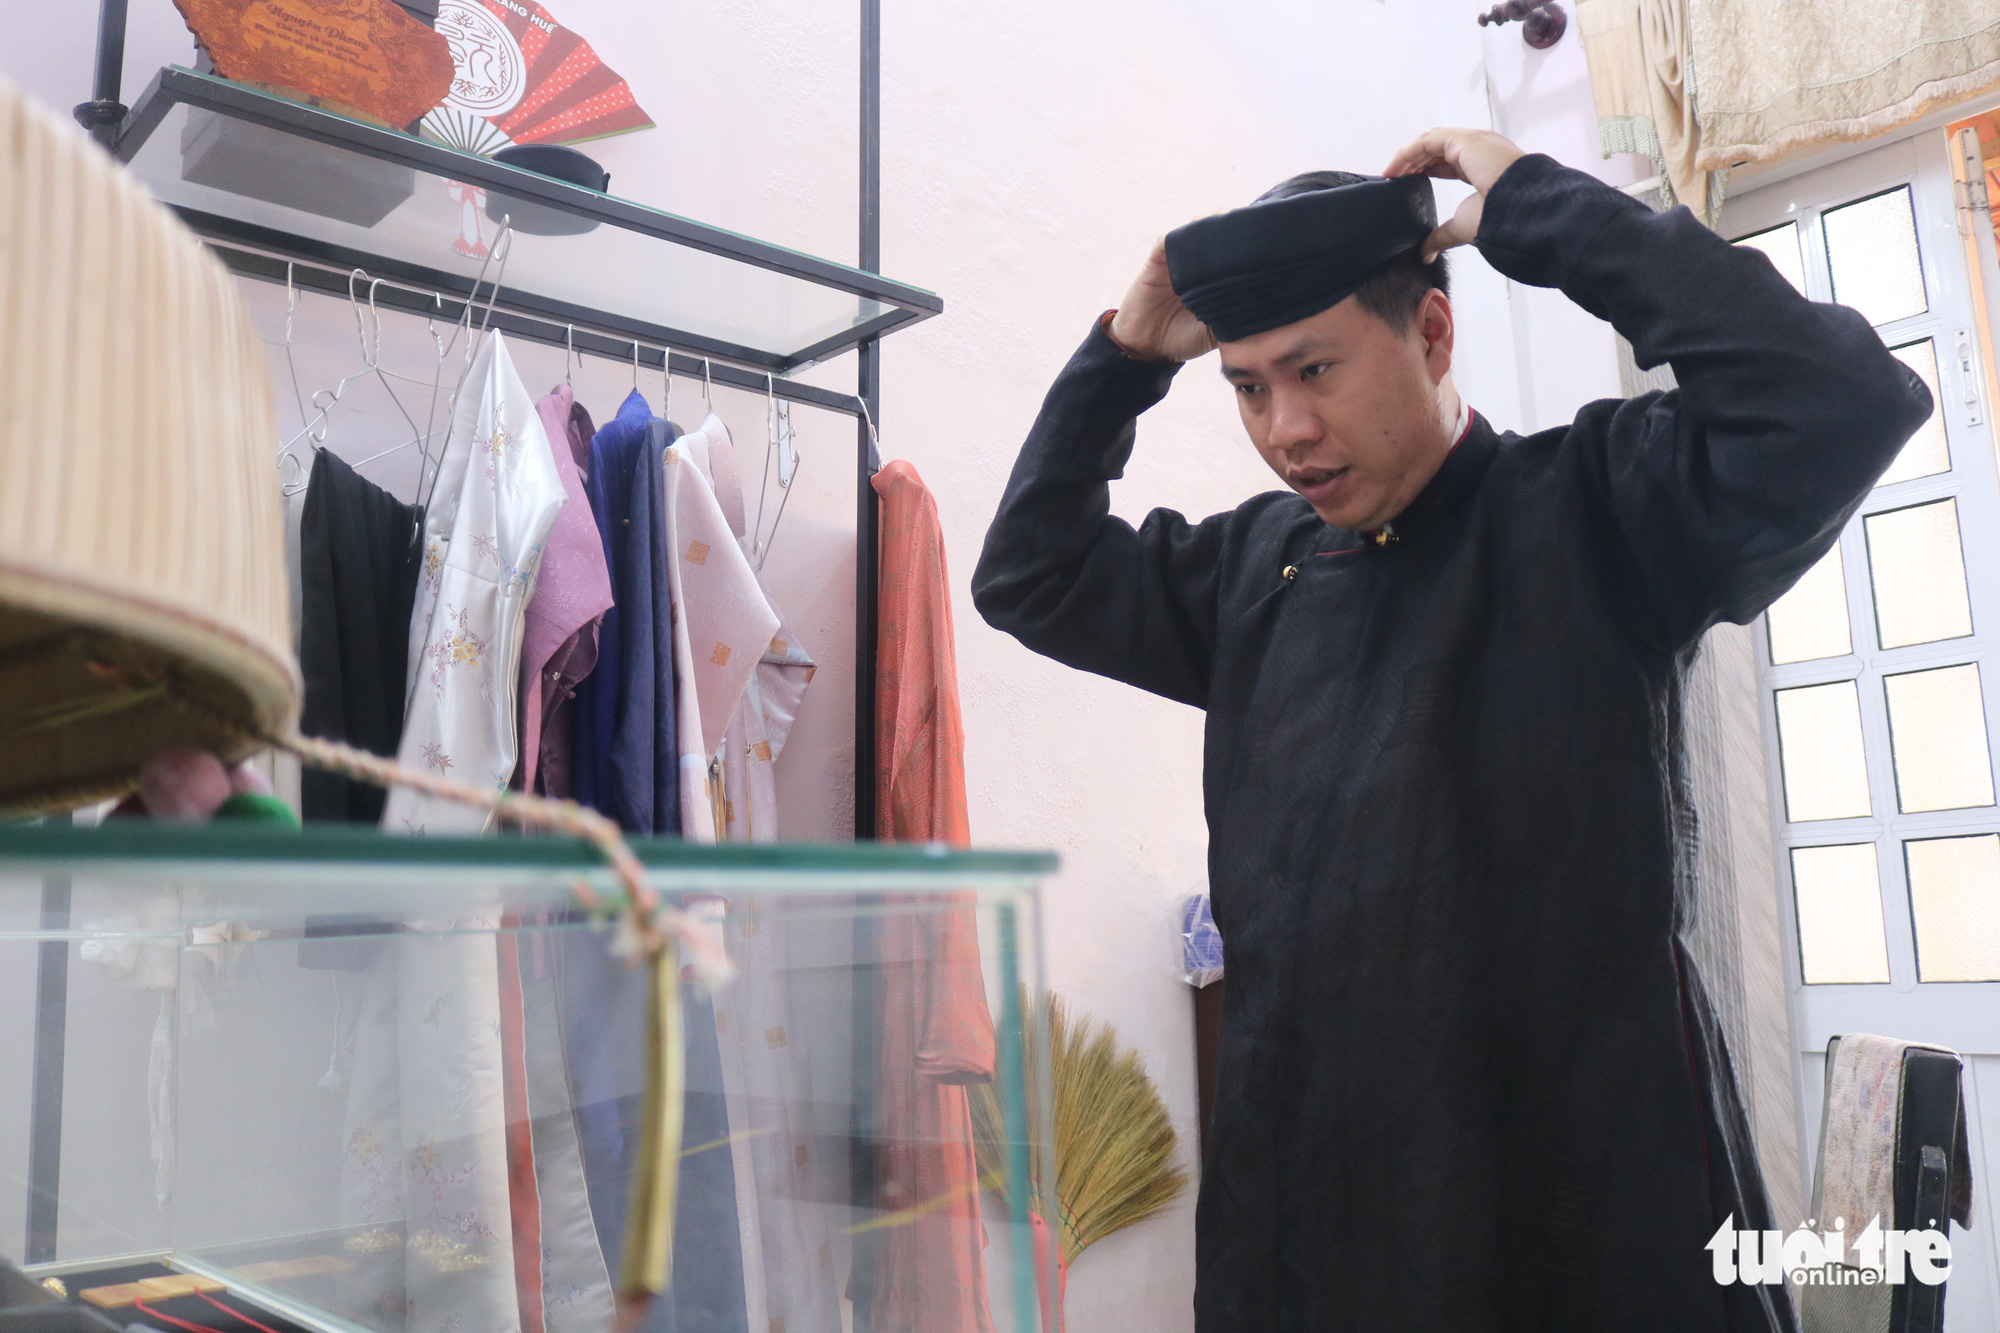 Tran Quang Minh Tan tries on a piece of Nguyen Dynasty clothing